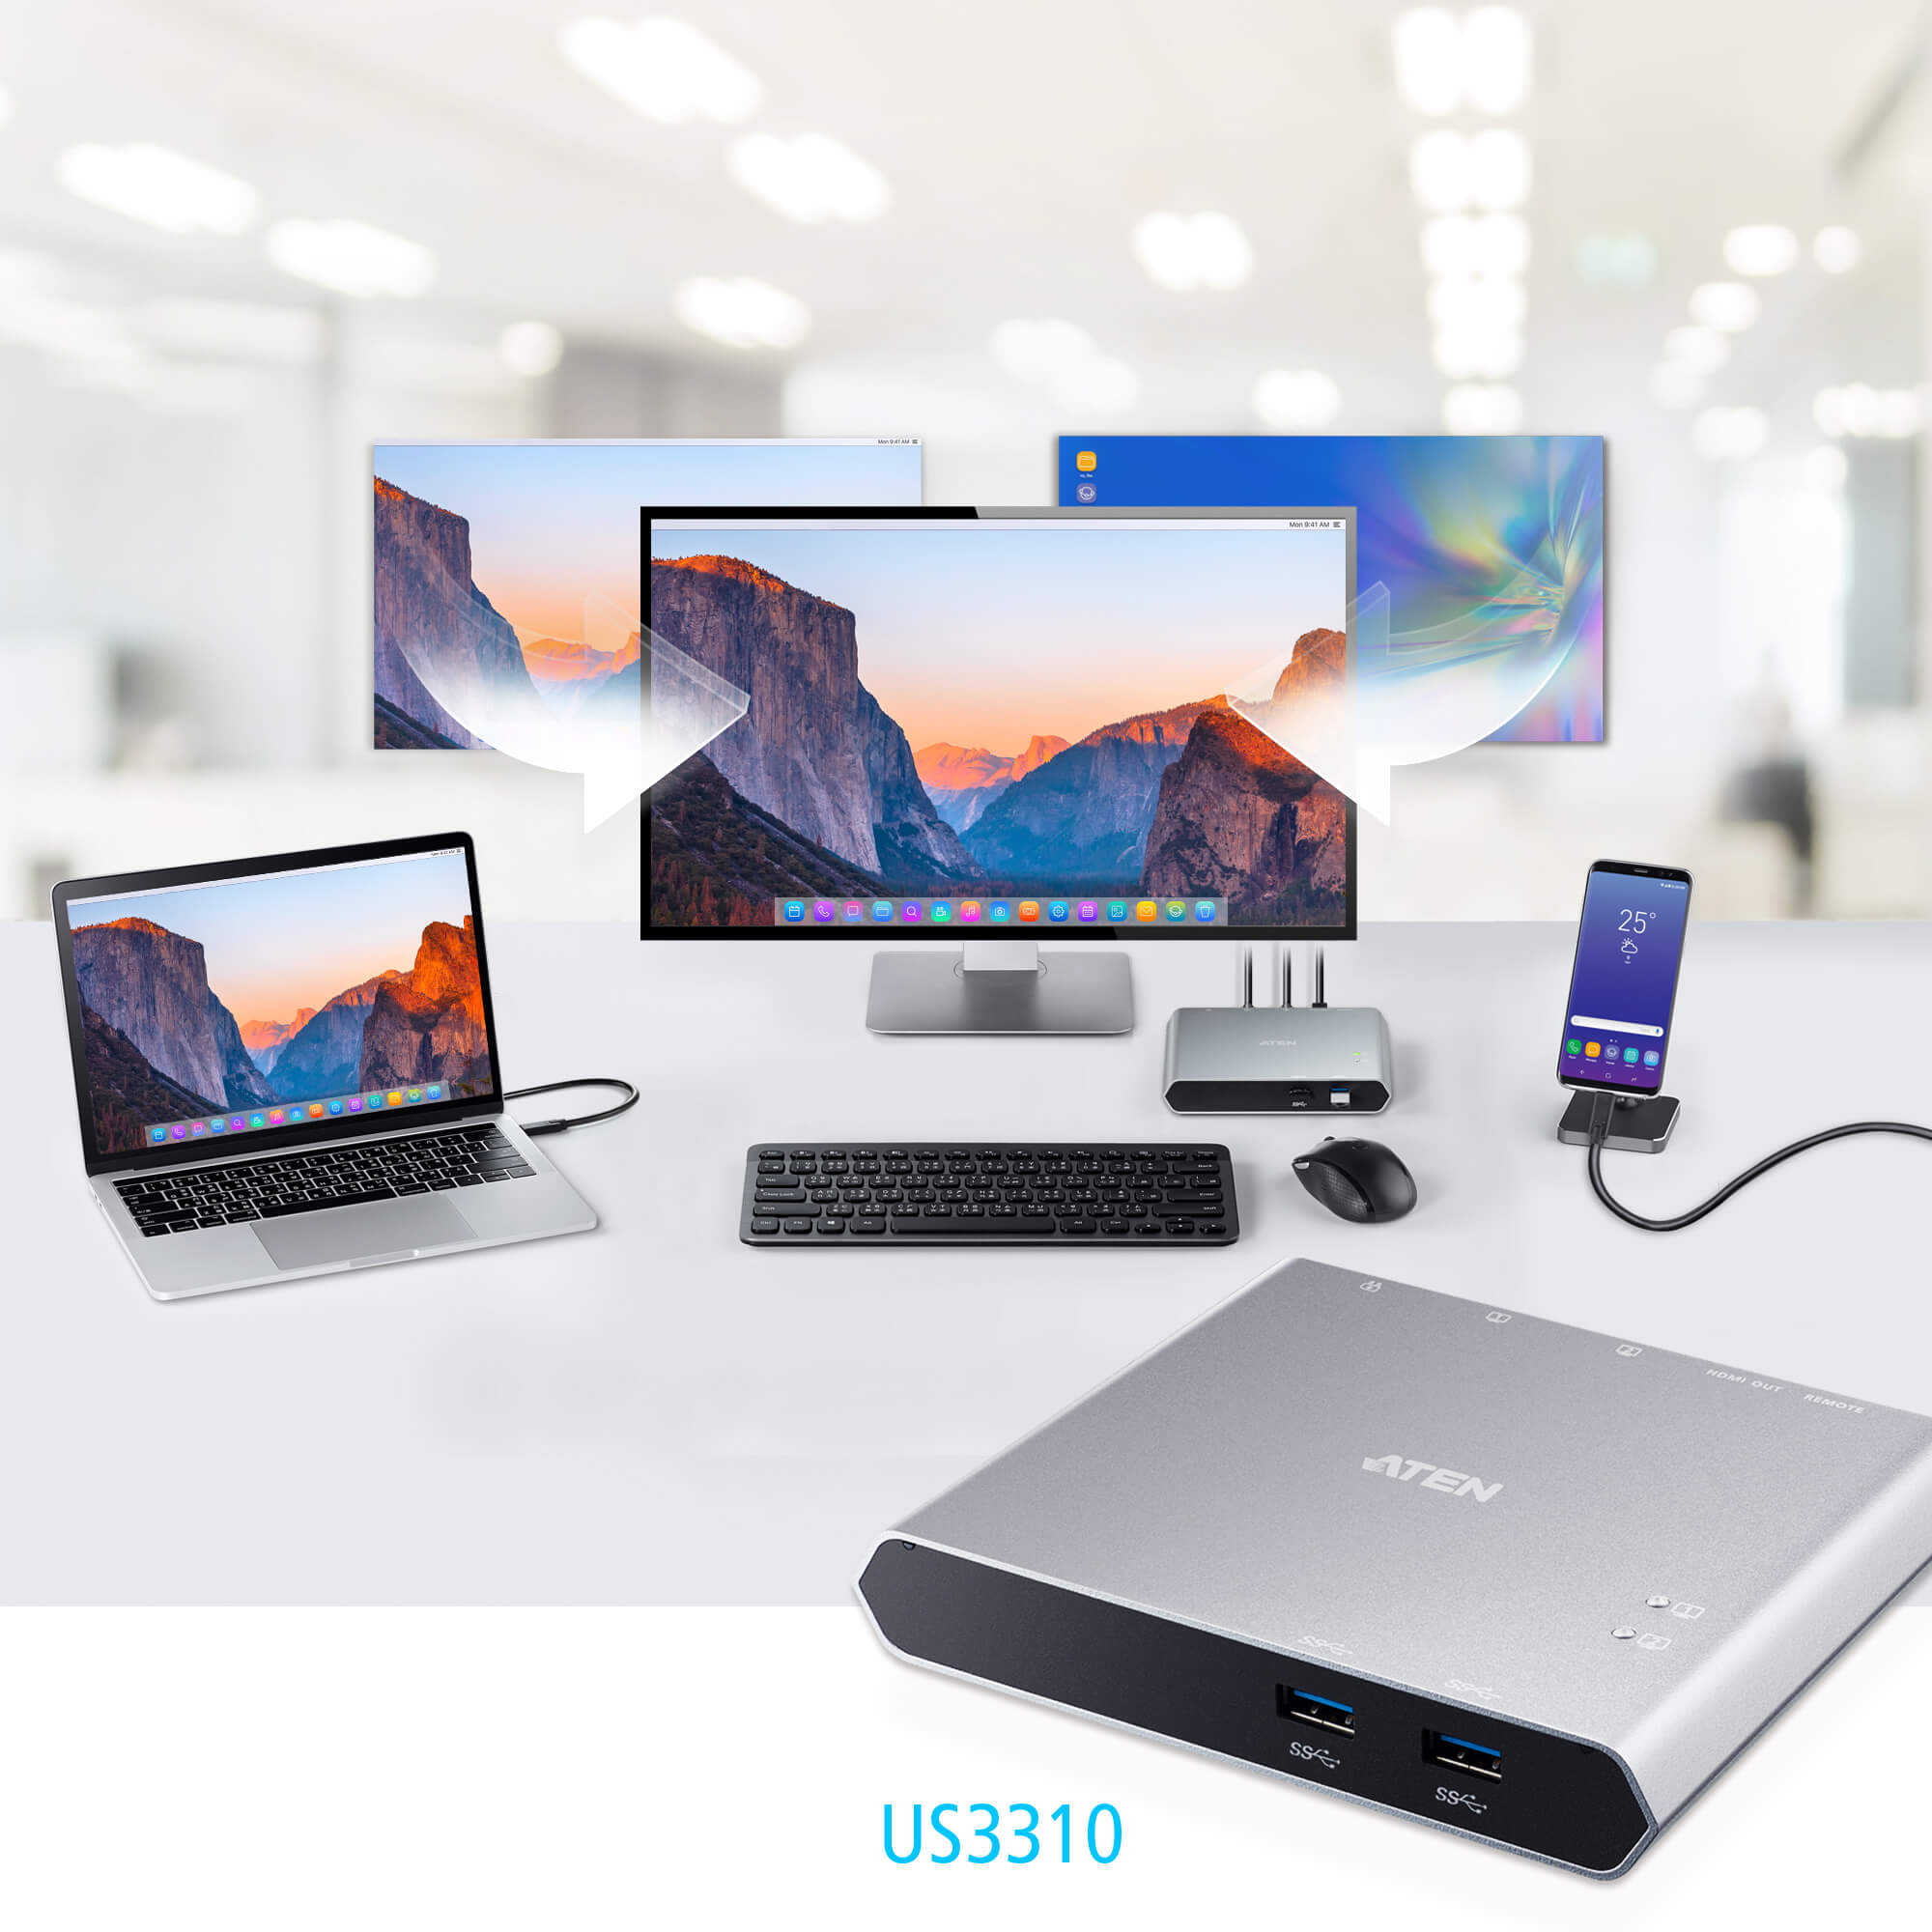 2-Port USB-C Gen 1 KVMP™ Switch (Dock) with Power Pass-through-4